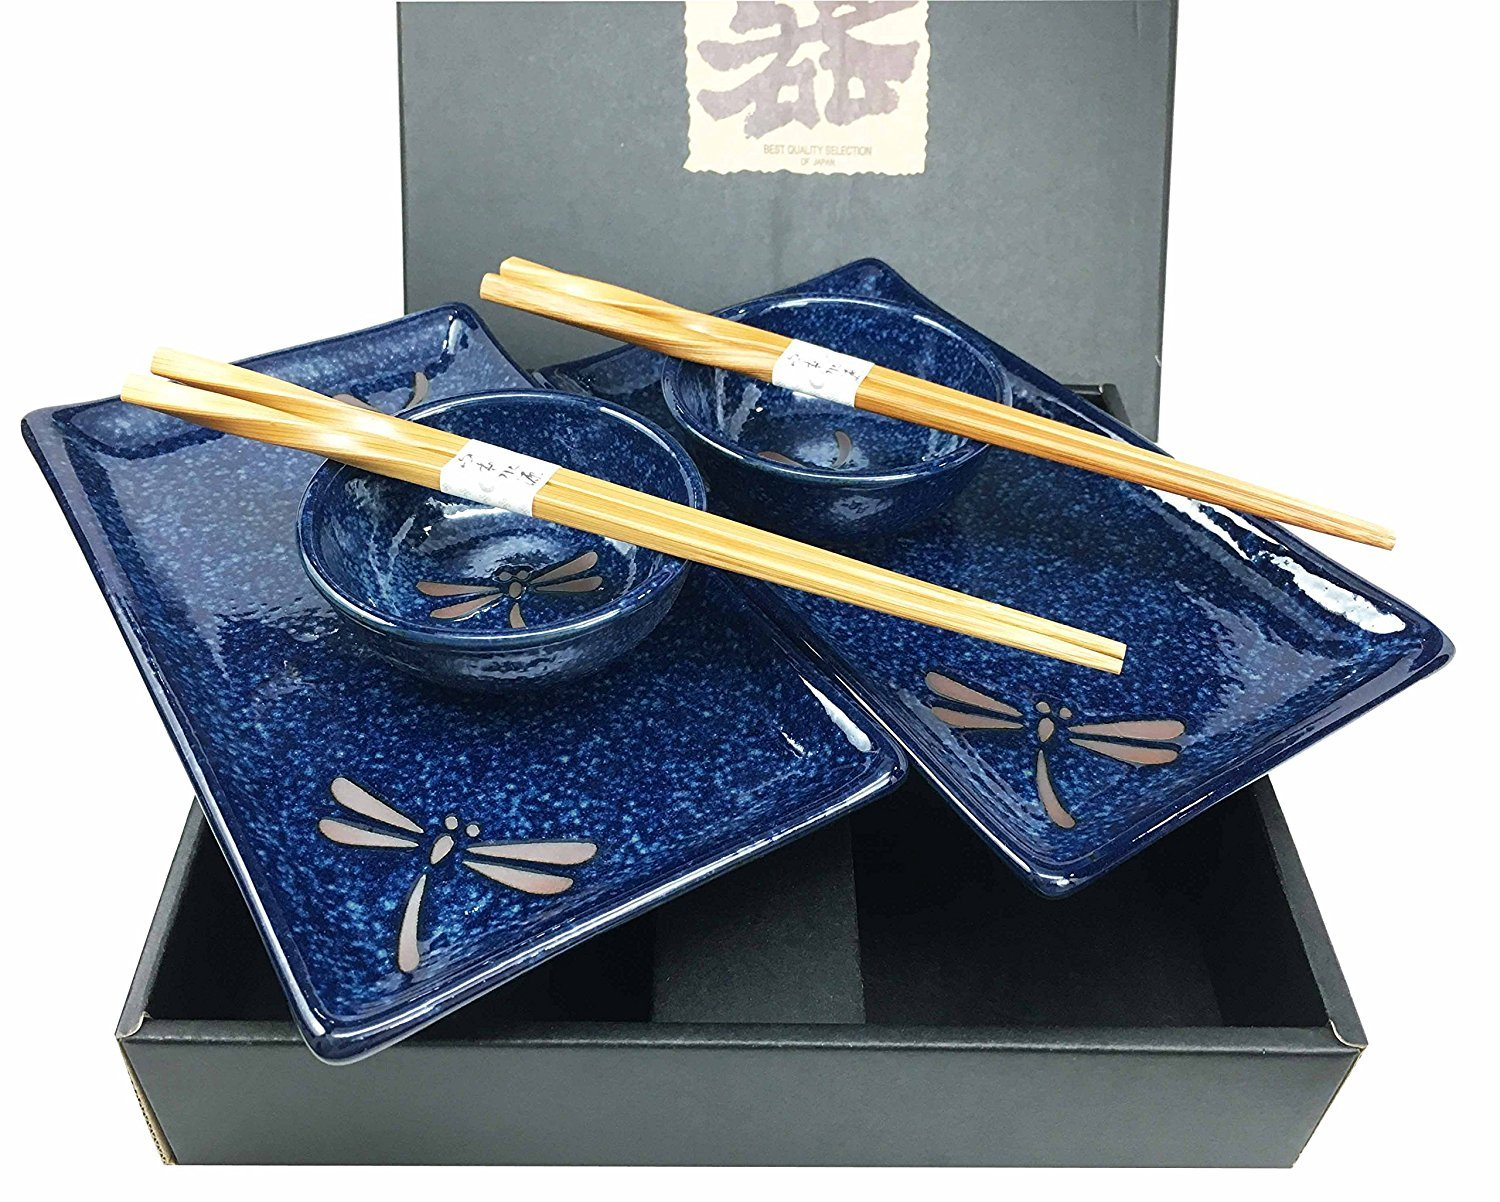 Made In Japan Dragonfly Symbol of Change In Life's Perspective Ceramic Sushi Dinnerware Set For Two Plates Sauce Bowls and Chopsticks For Home Decor Housewarming Gift AtlanticCollectibles COMINHKPR128917